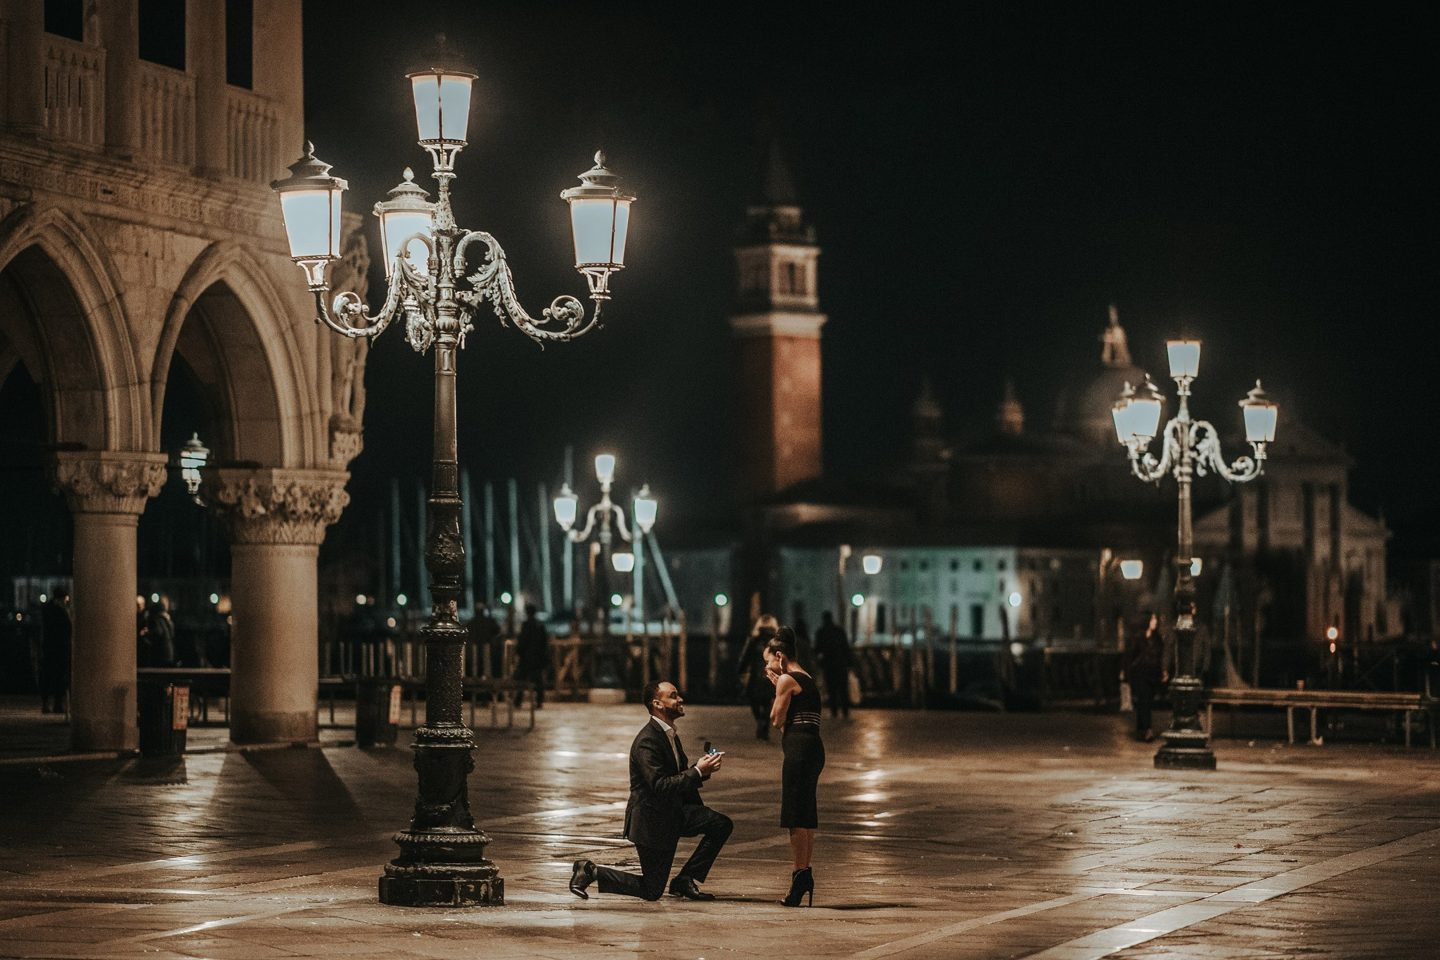 romantic photo session in venice by night